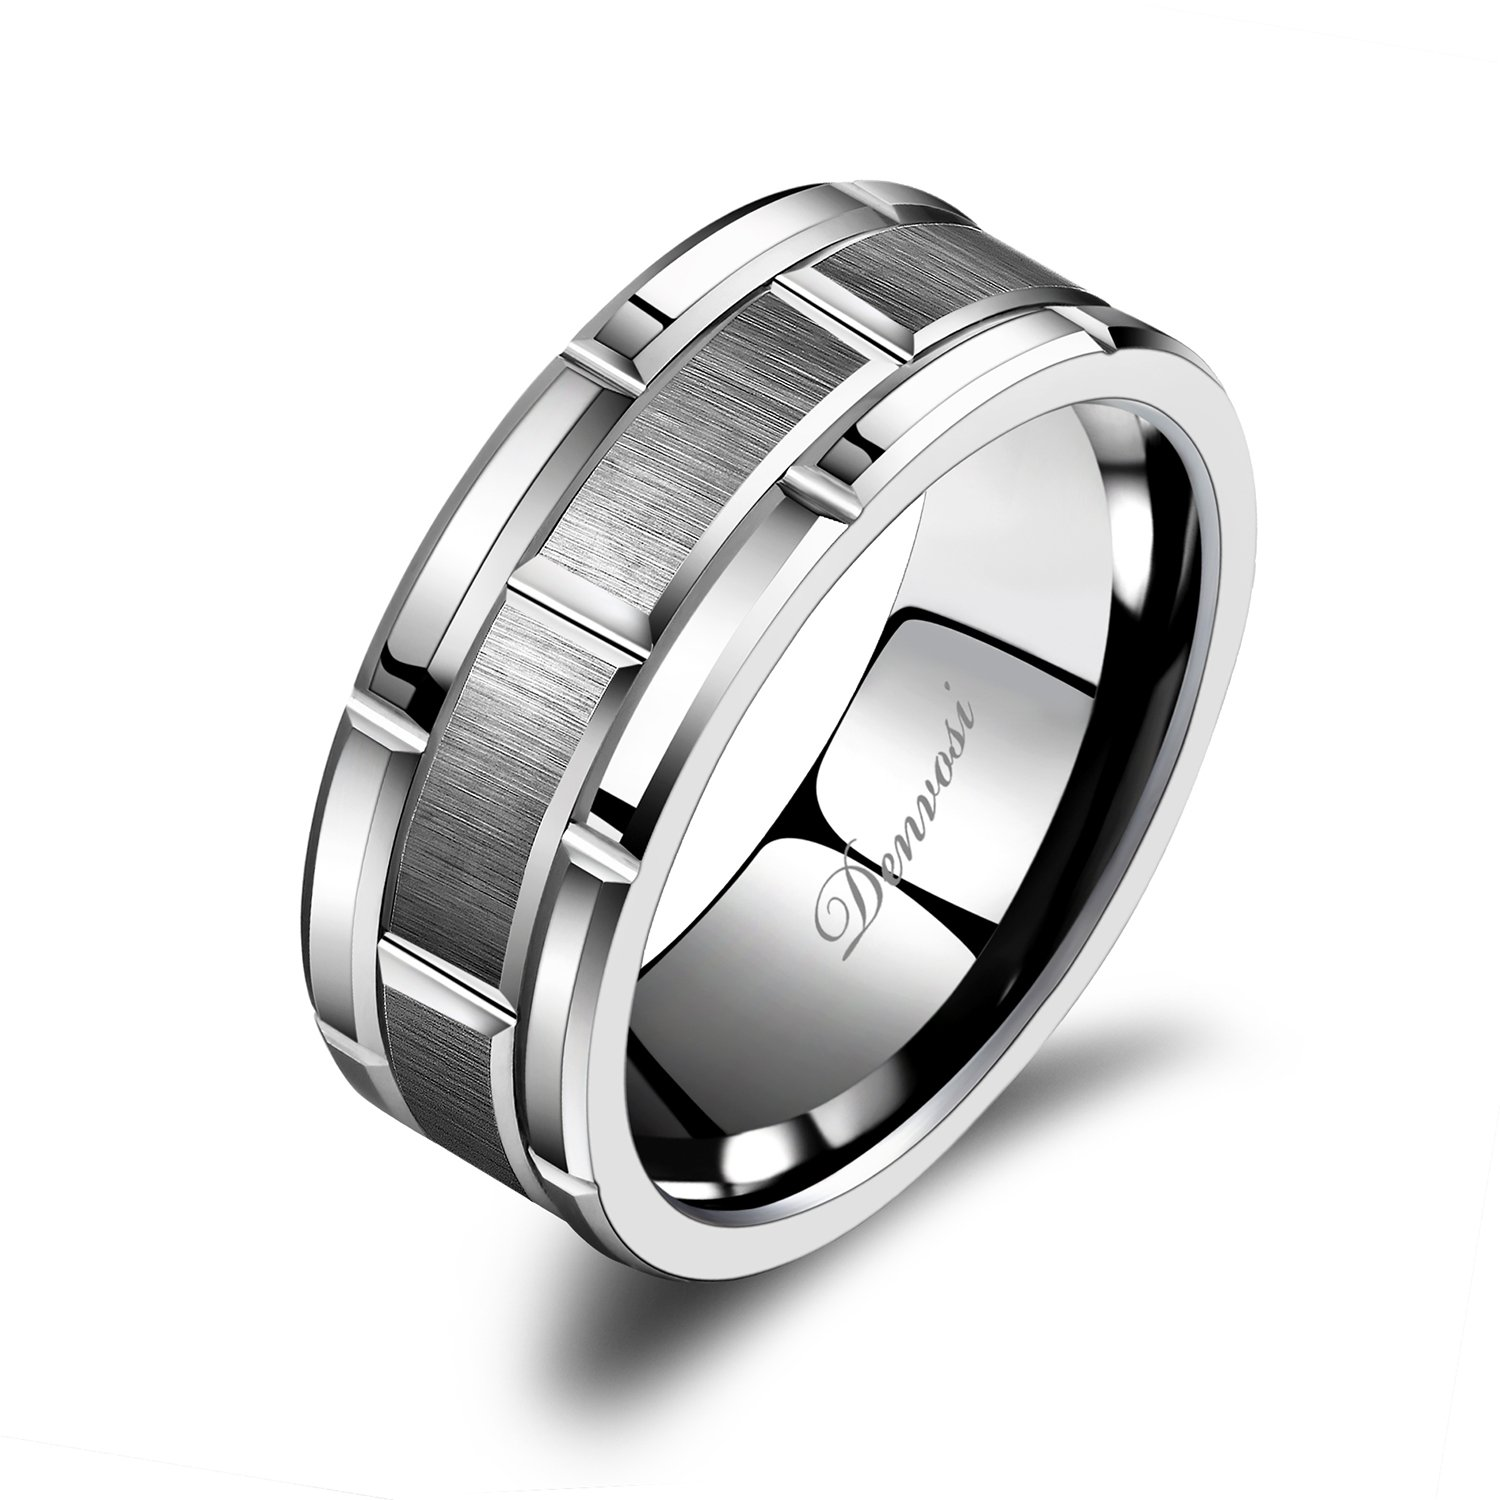 Denvosi Men Wedding Band Tungsten Ring 8MM Brick Pattern Matte Brushed Silver Surface Engagement Anniversary Ring Comfort Fit Size 6-14.5